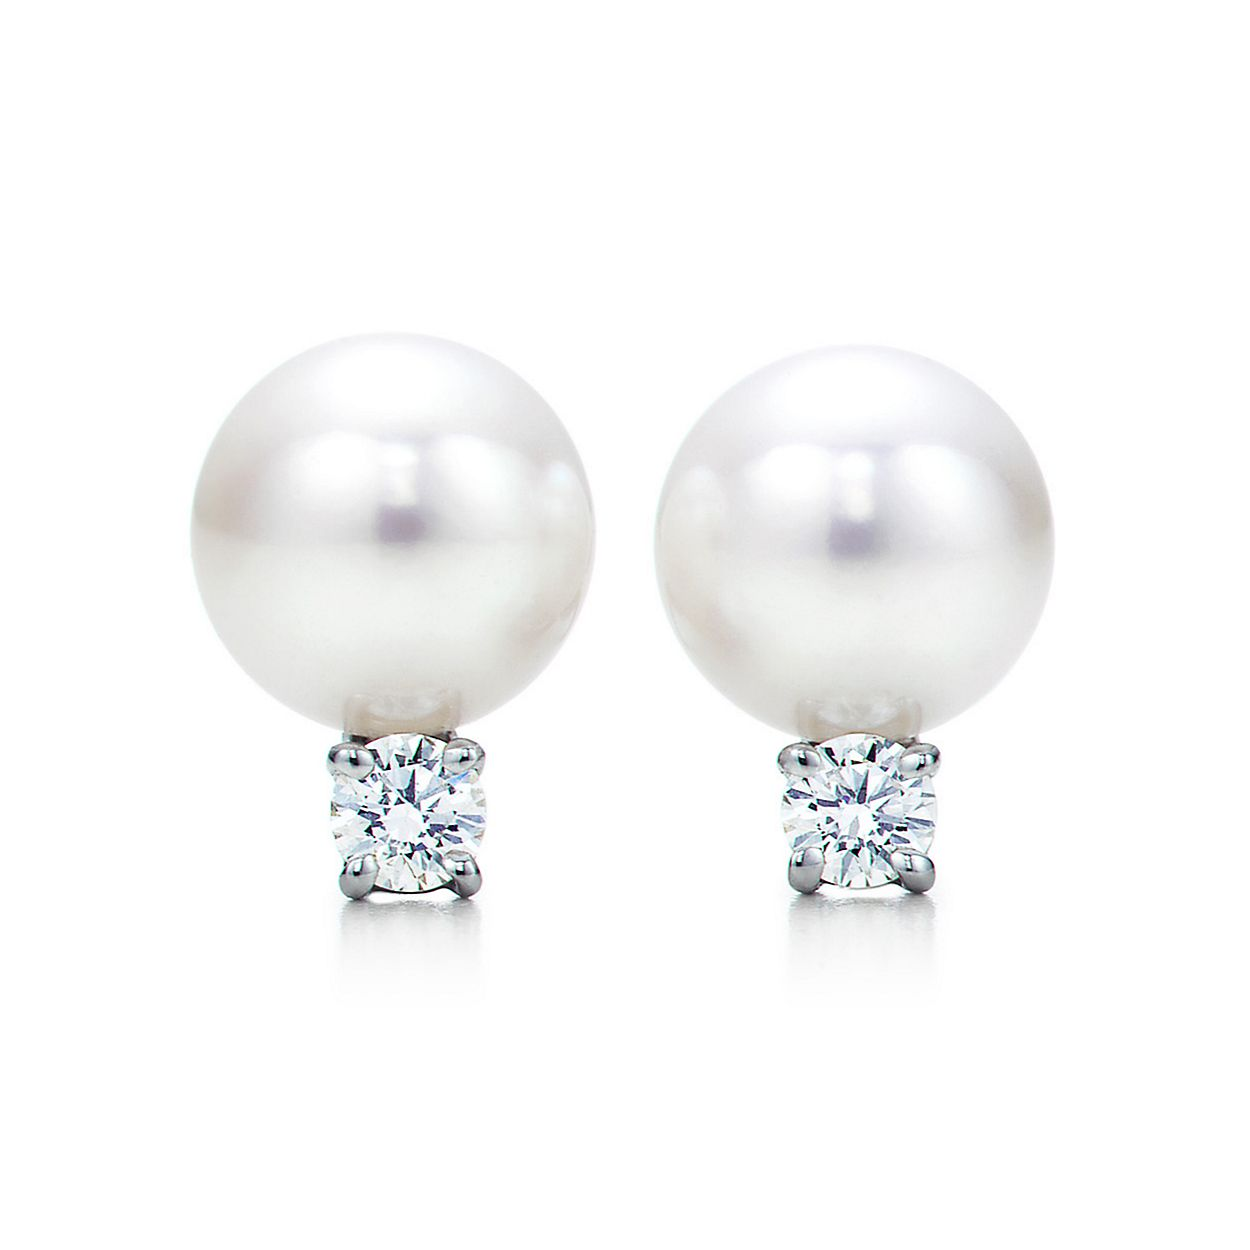 Tiffany Signature Pearls Earrings